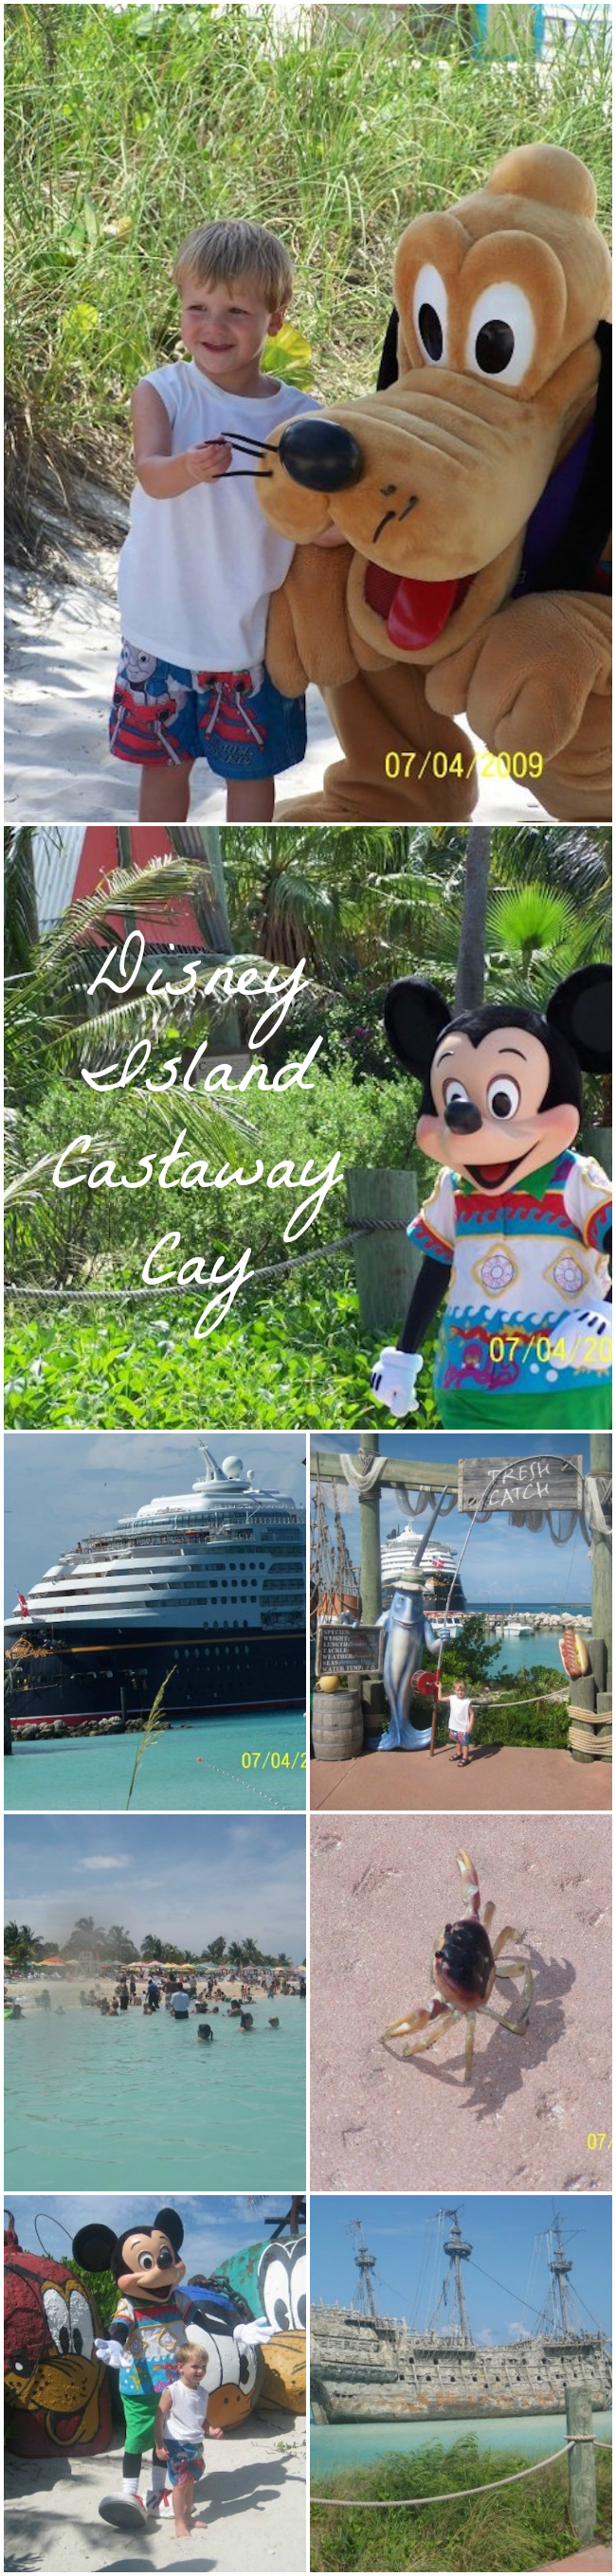 Unknown to many, Disney actually own a private island in the Caribbean Sea called Castaway Cay. Accessibility is only through Disney cruise ships.